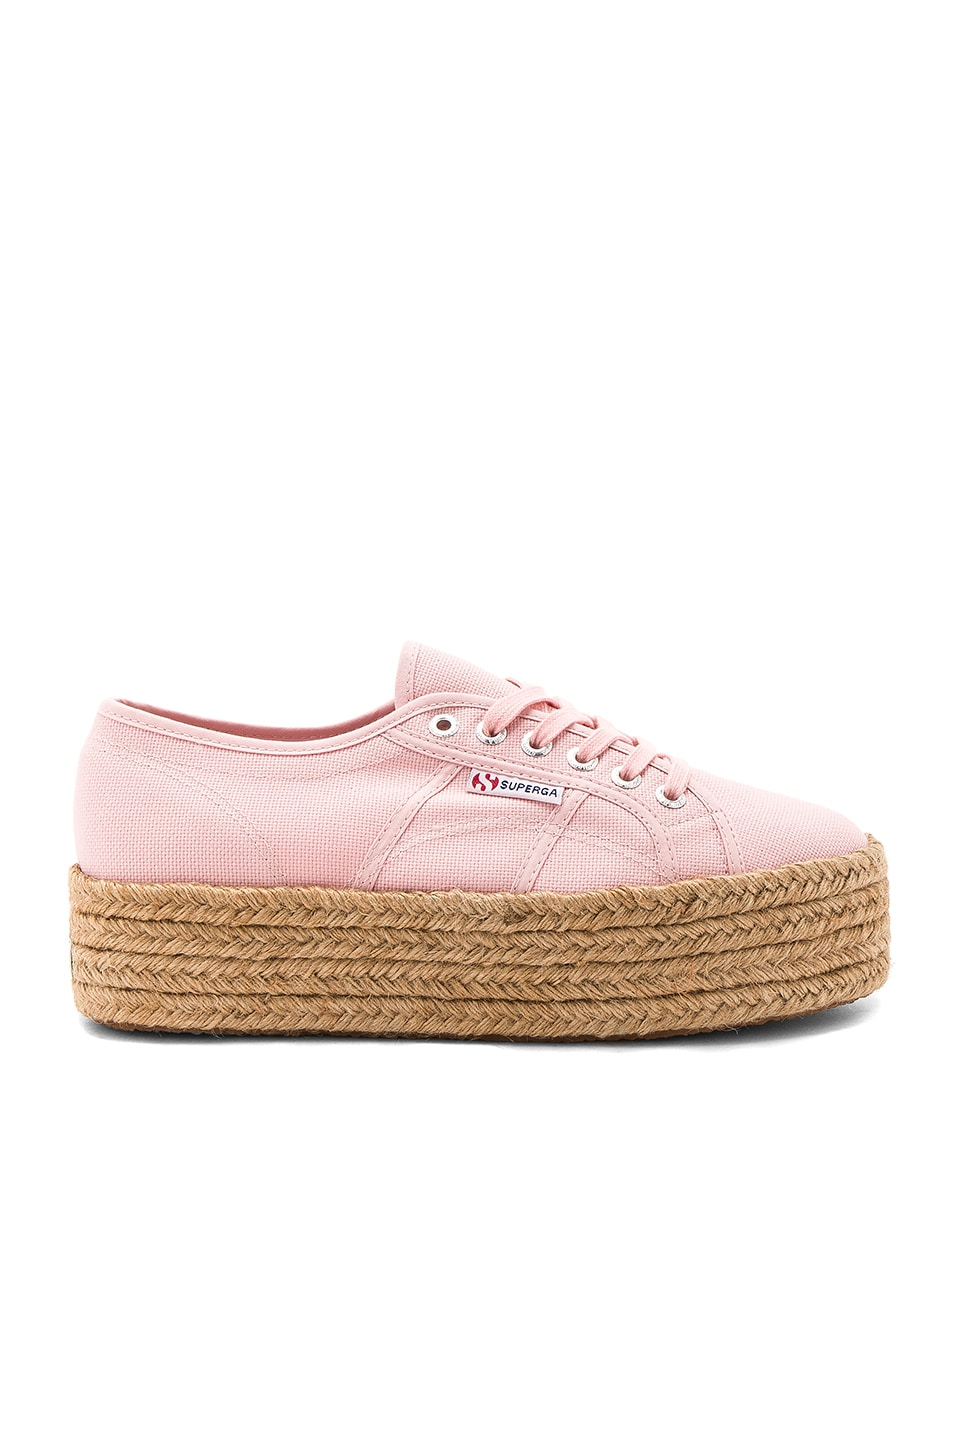 Superga 2790 Sneaker in Vintage Light Pink